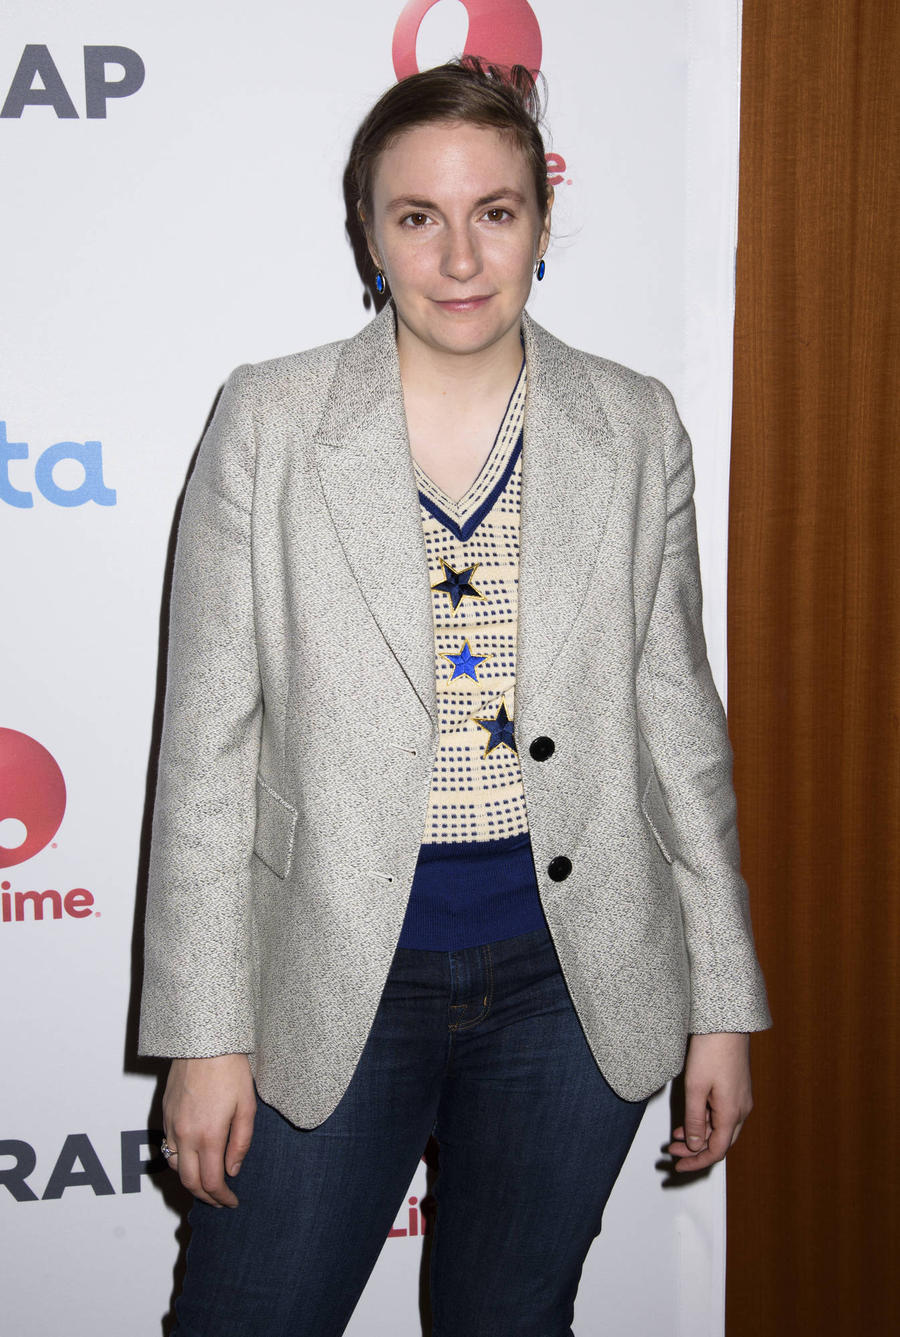 Lena Dunham Criticises Kanye's 'Disturbing' Famous Video